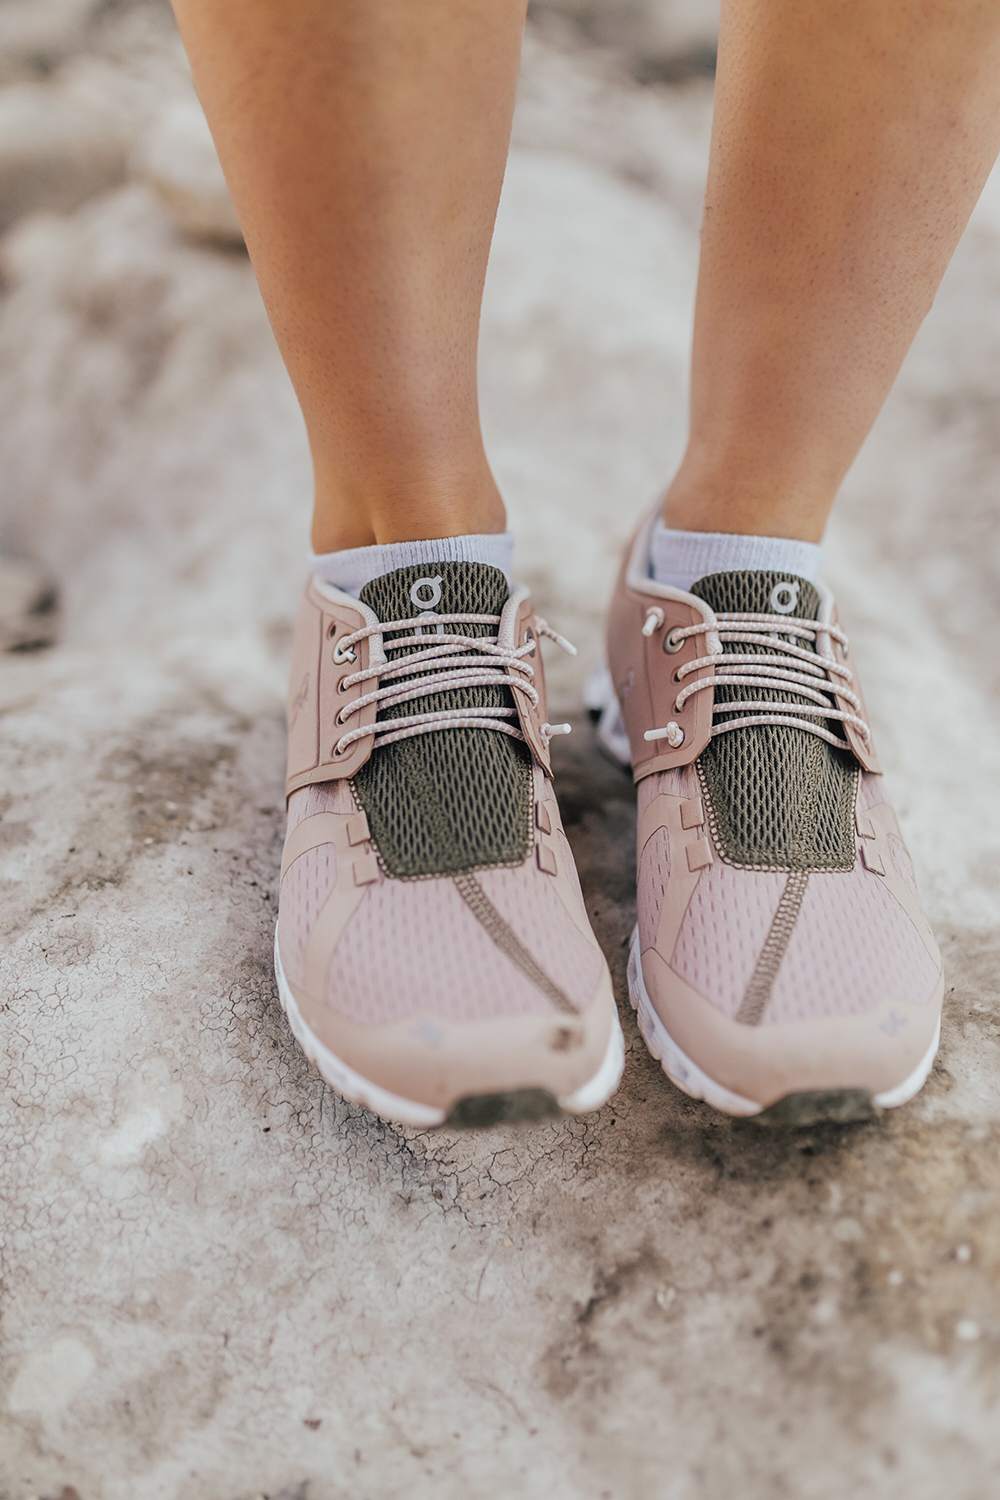 livvyland-blog-olivia-watson-austin-texas-lifestyle-fashion-blogger-greenbelt-hike-on-cloud-running-shoes-1